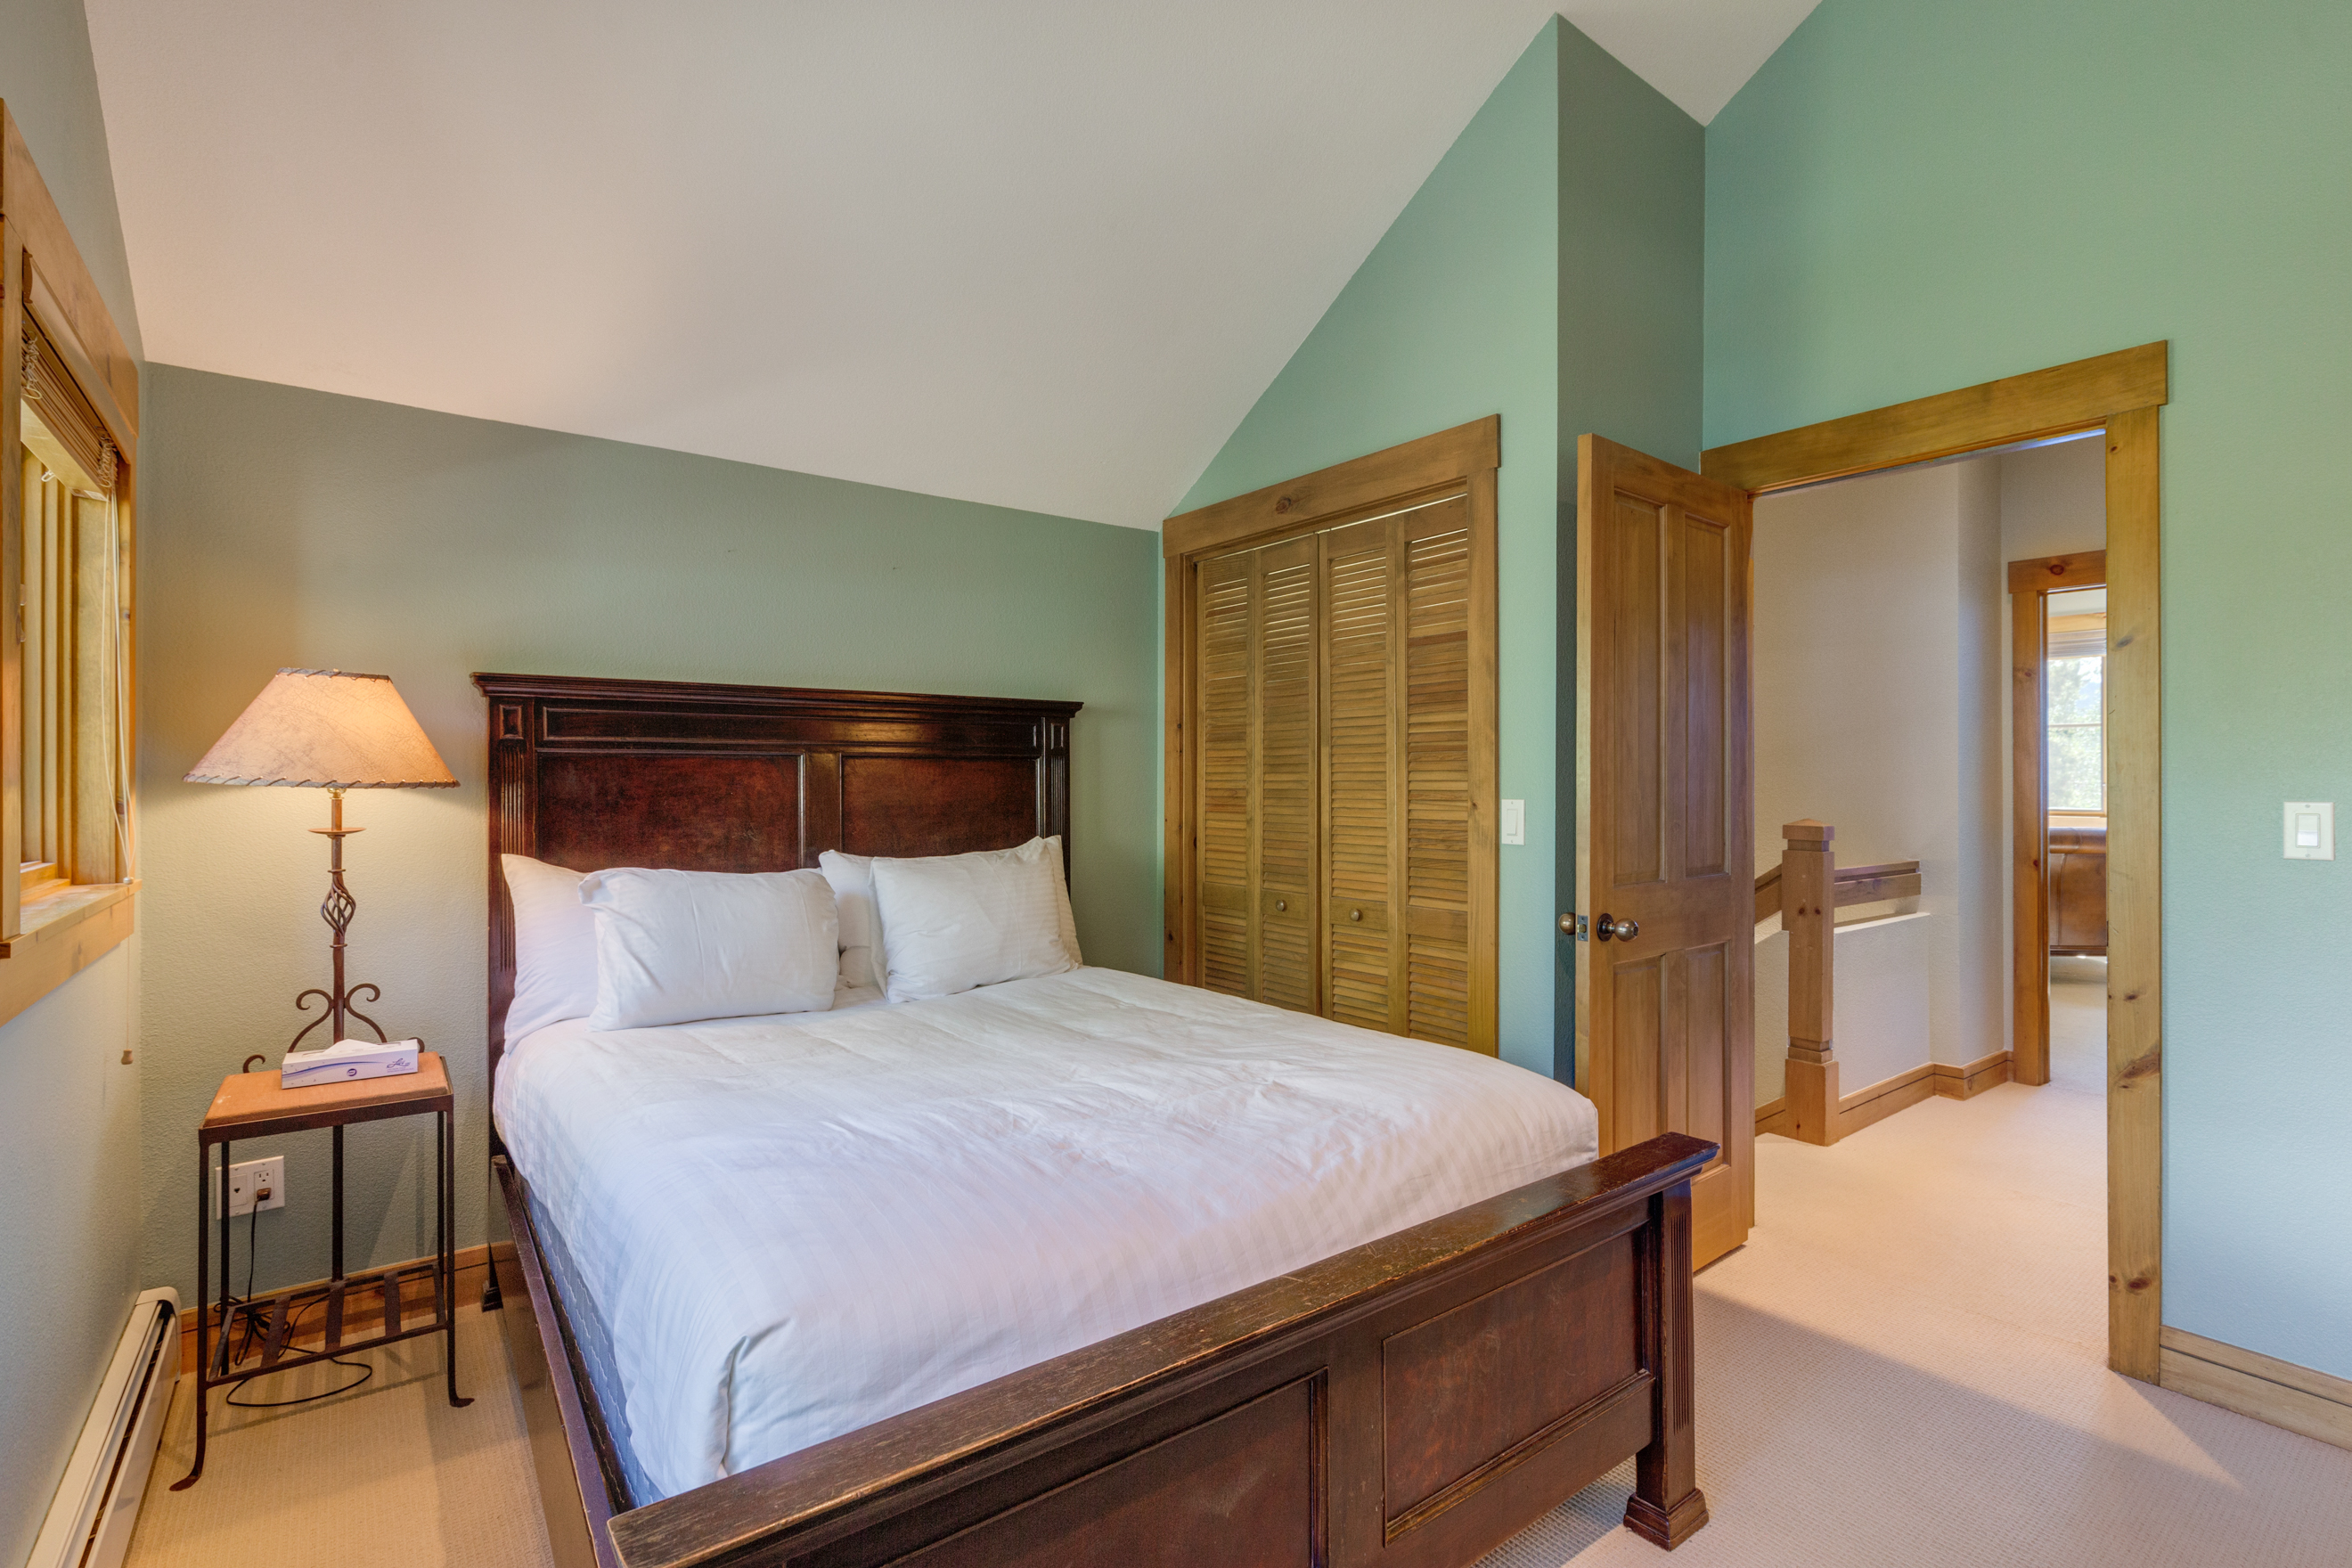 The first guest bedroom features a queen-sized bed and has access to a jack-and-jill bathroom.